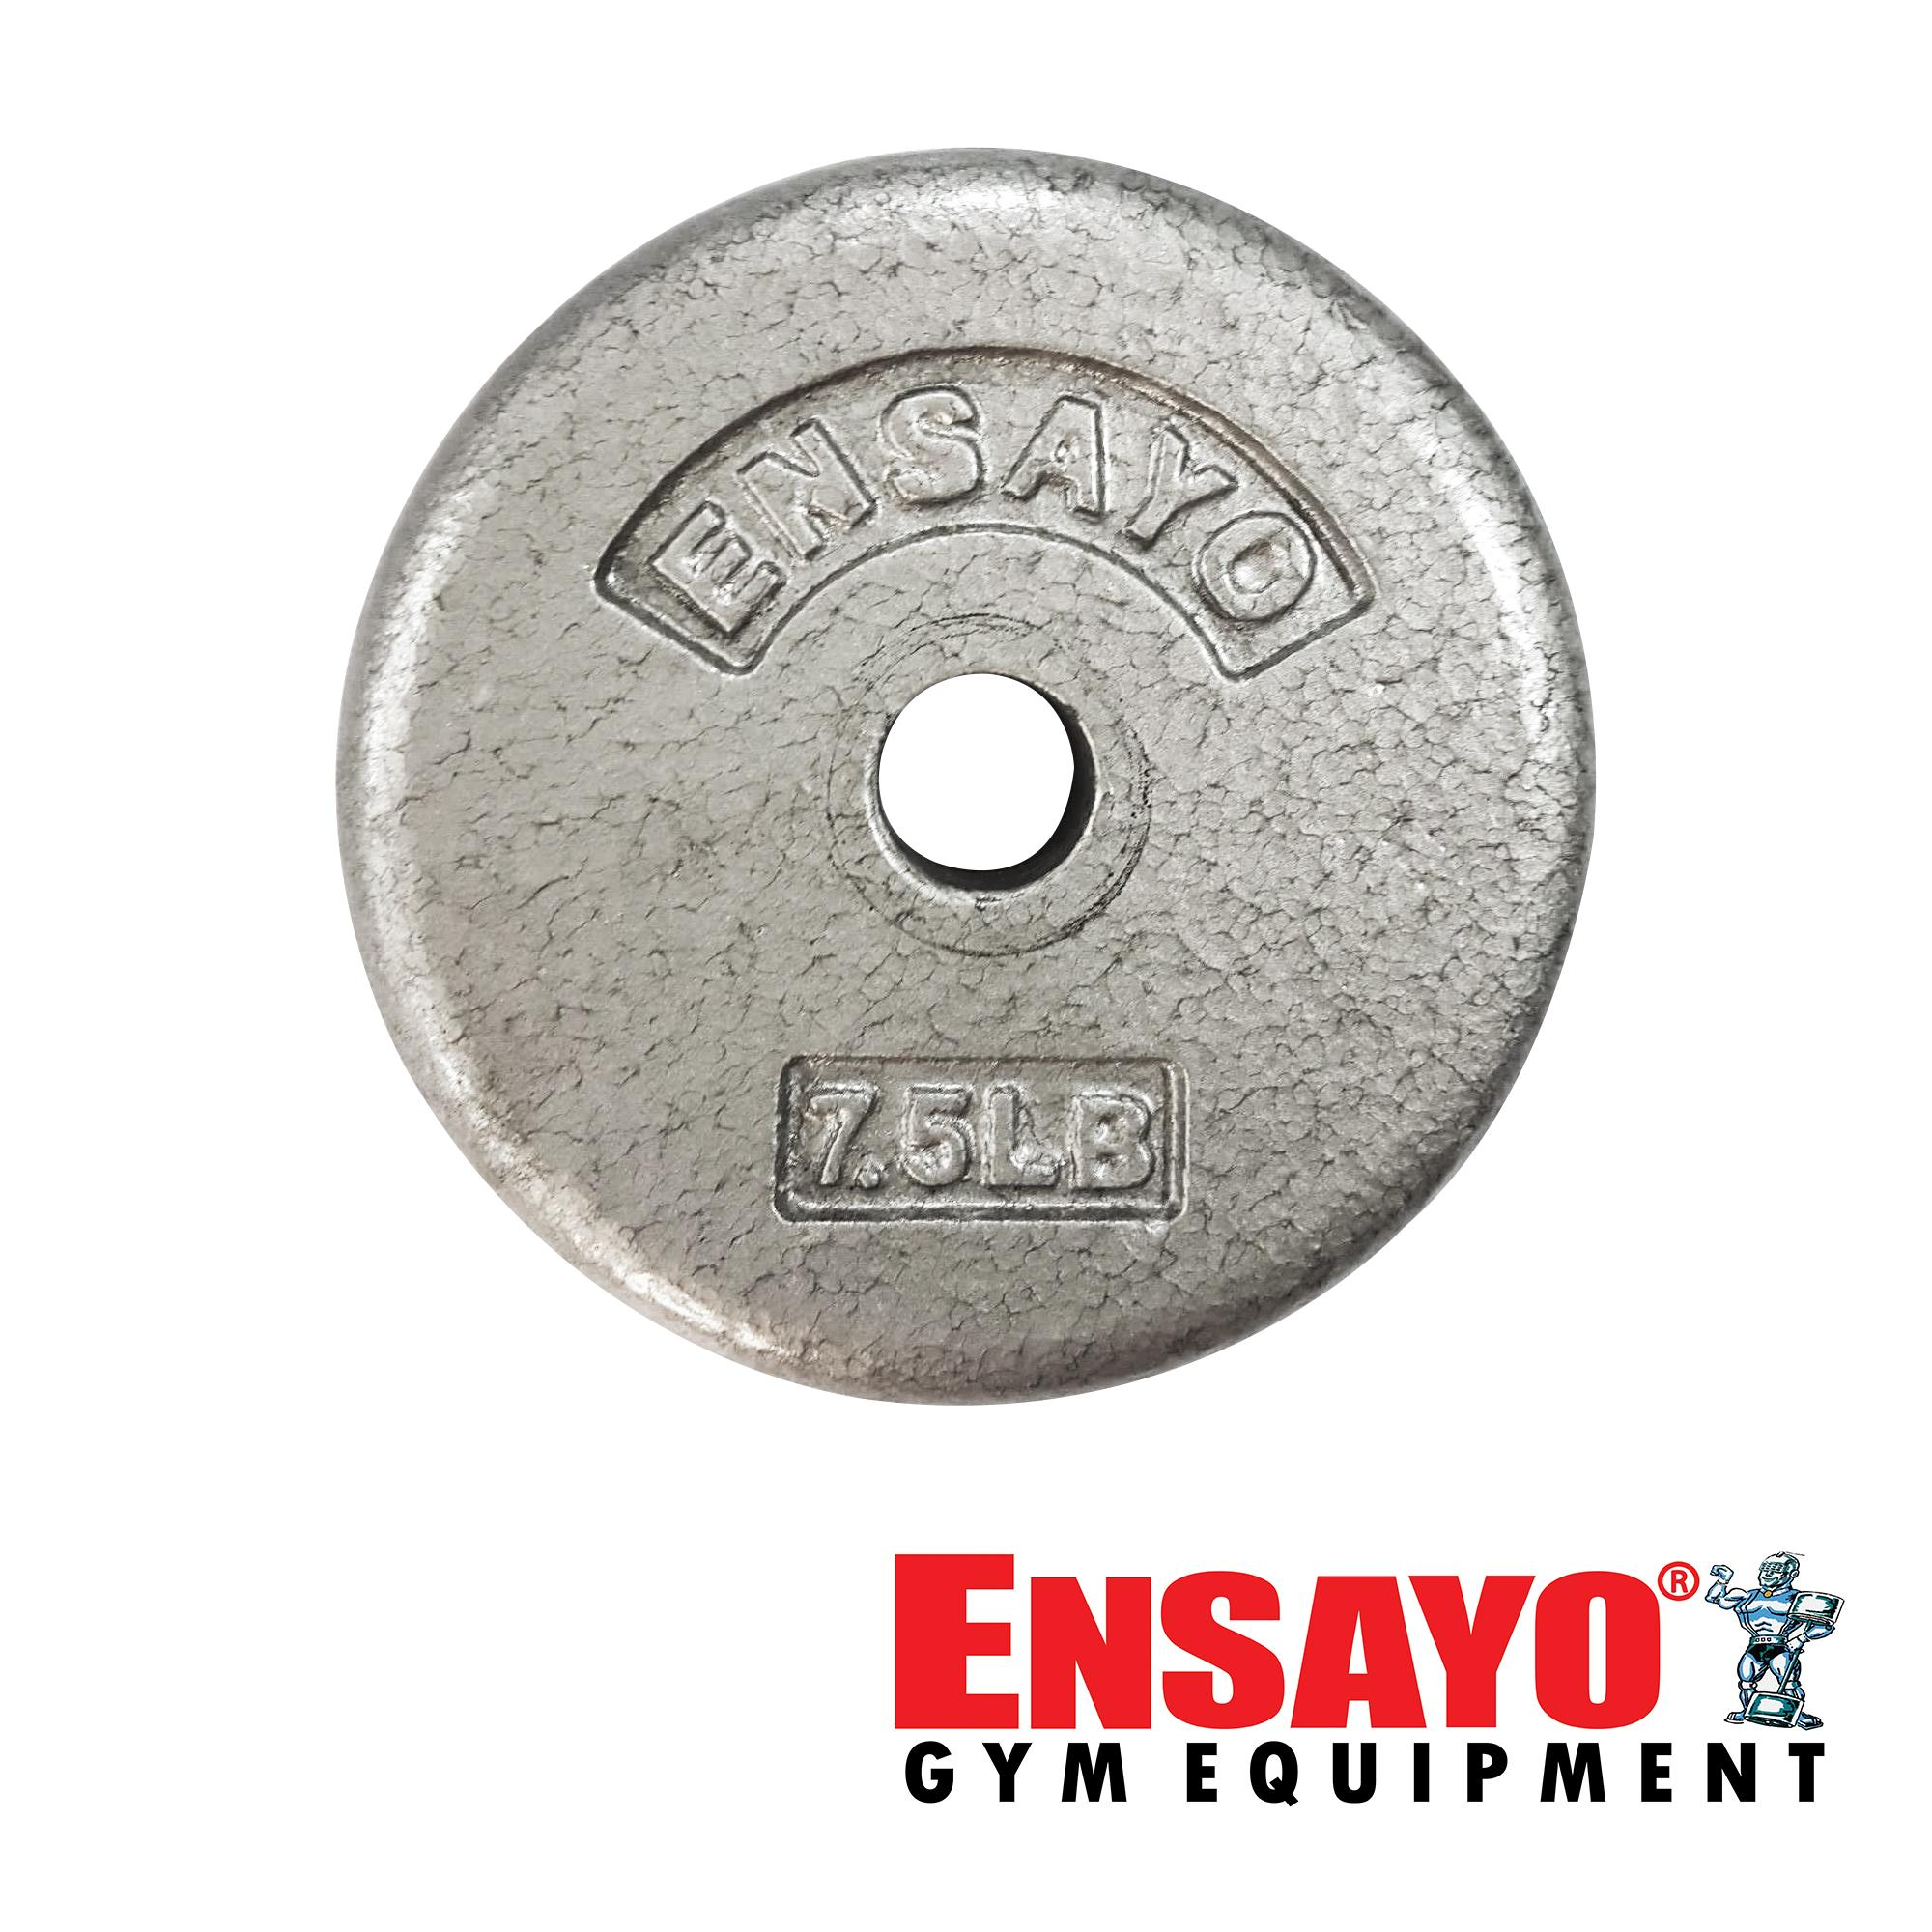 845a798d2ea ENSAYO 1-inch Iron Plate 7.5Lbs. Dumbbell Cast- Best Home Commercial